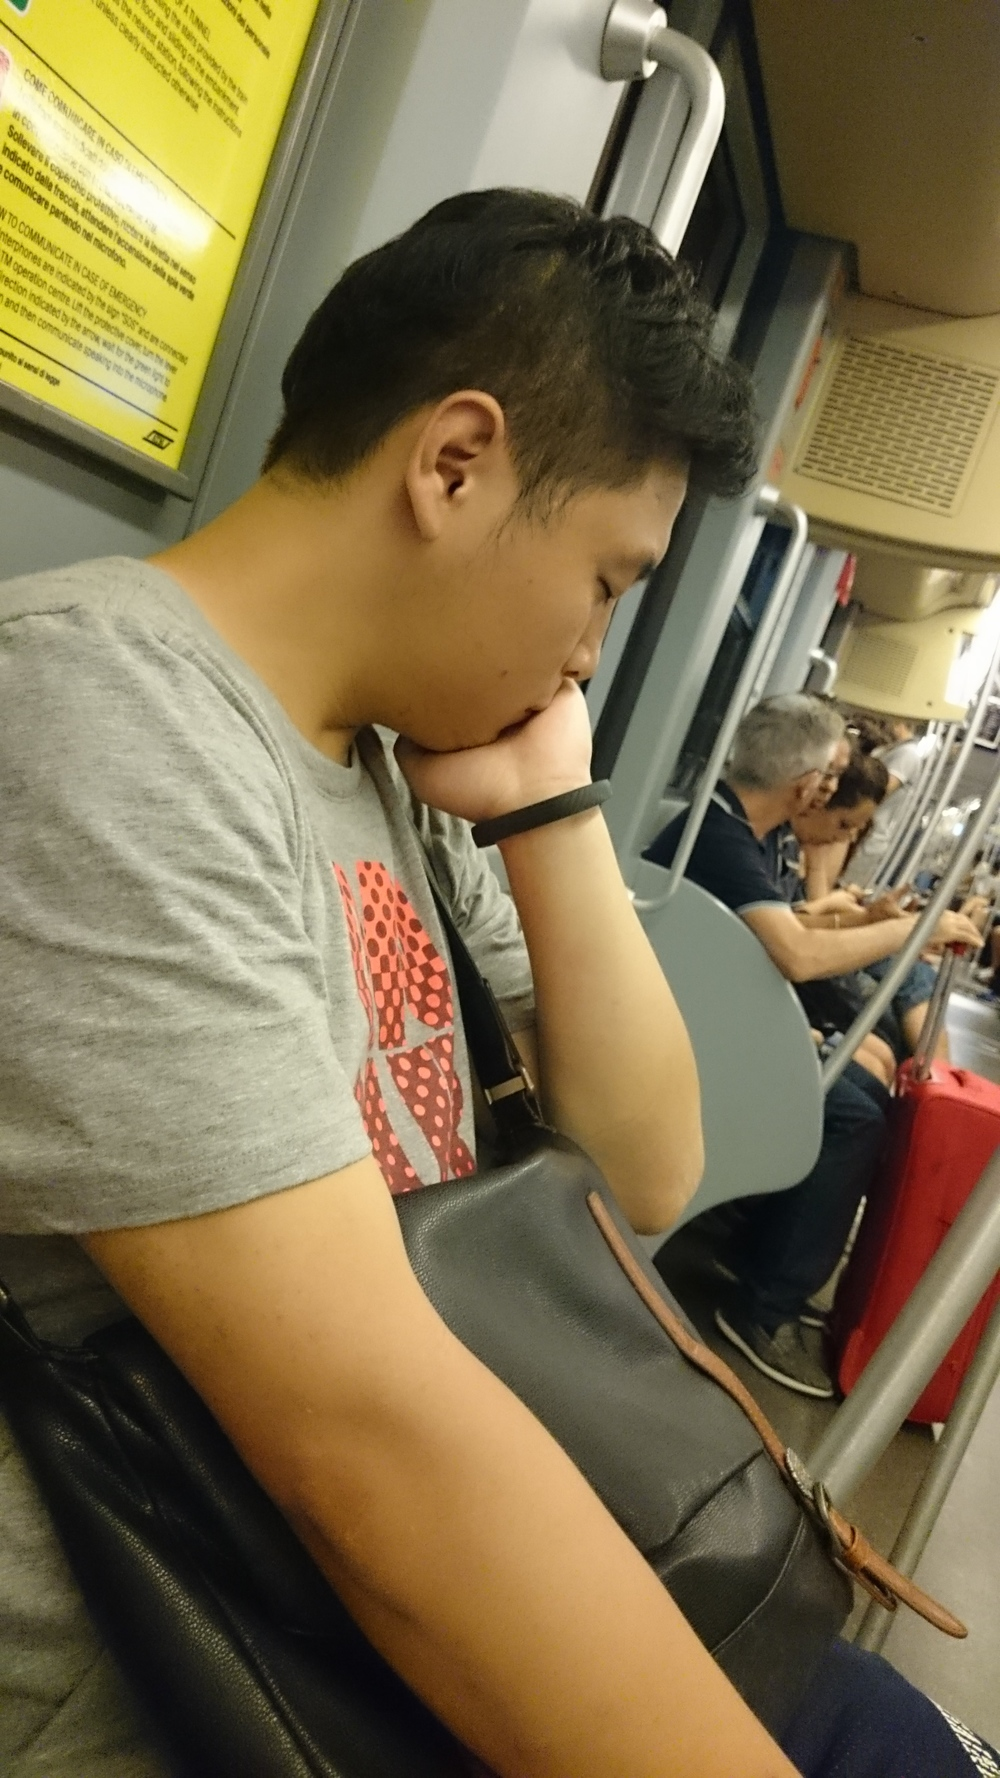 Congee sleeping in public #2